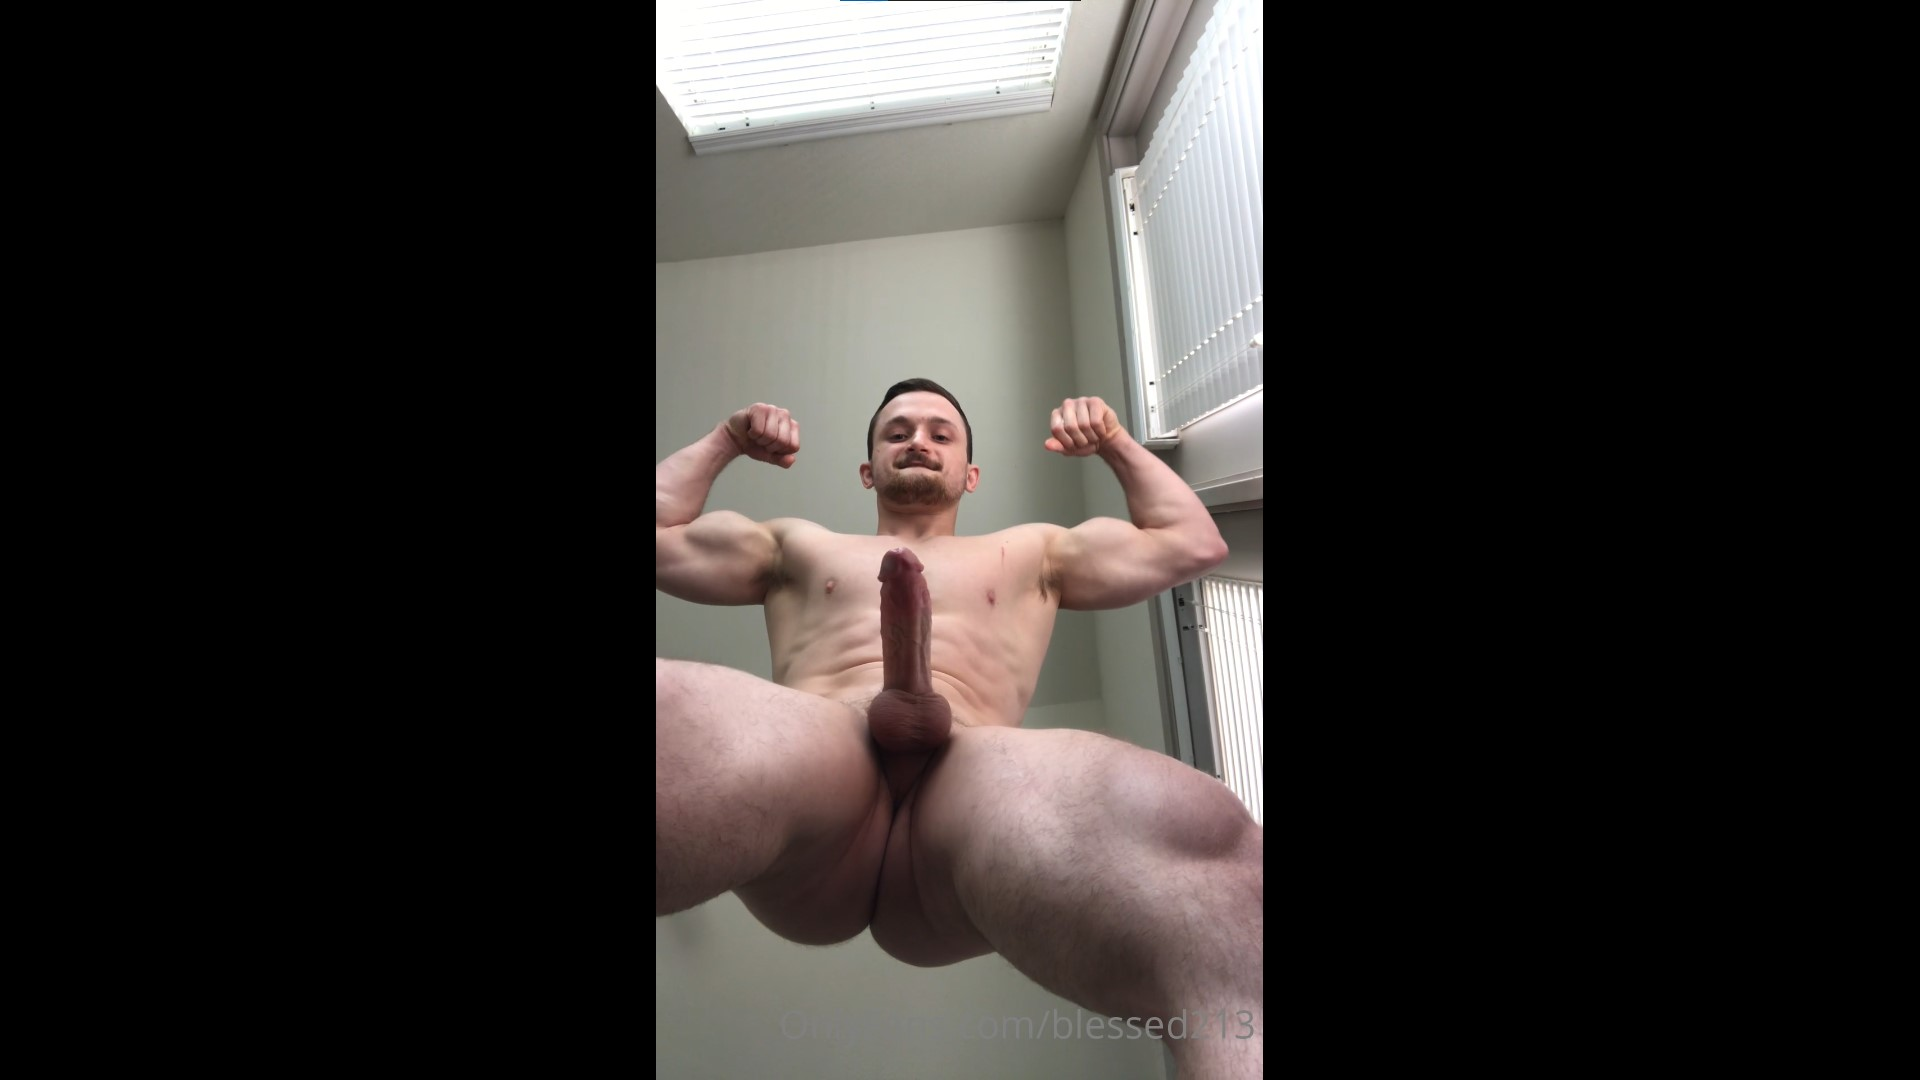 Cumming hard after edging my cock for a while - blessed213